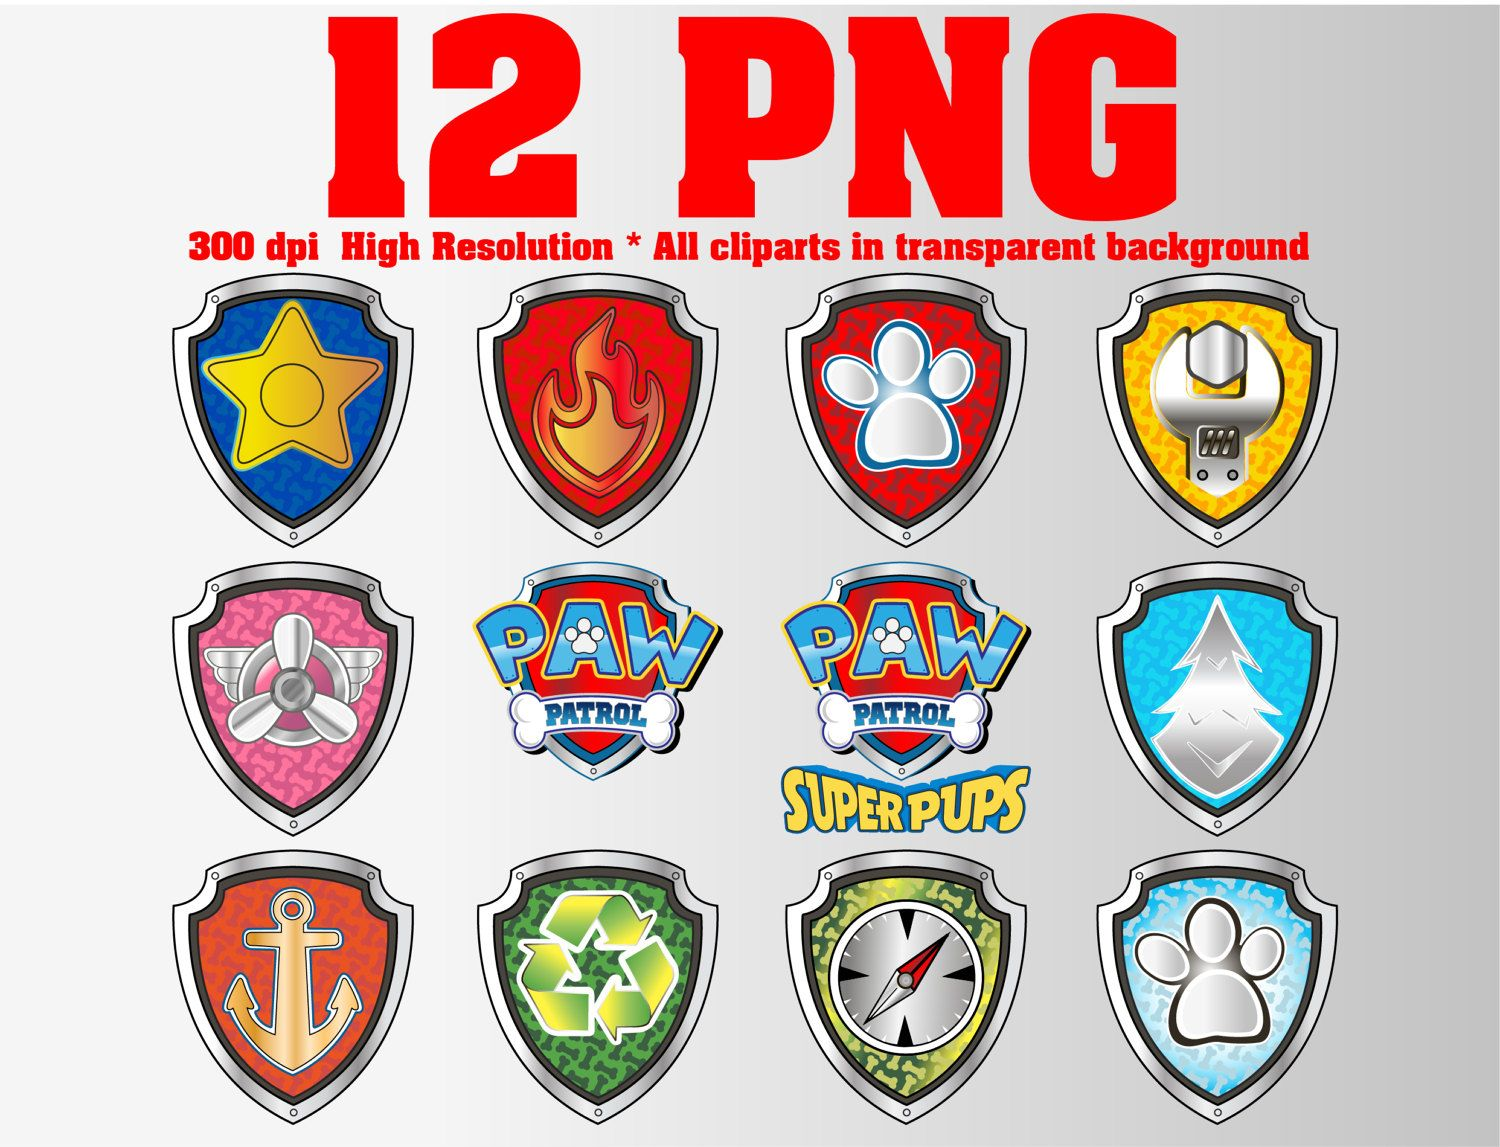 Paw All Patrol Badges Clipart 12 Png 300dpi